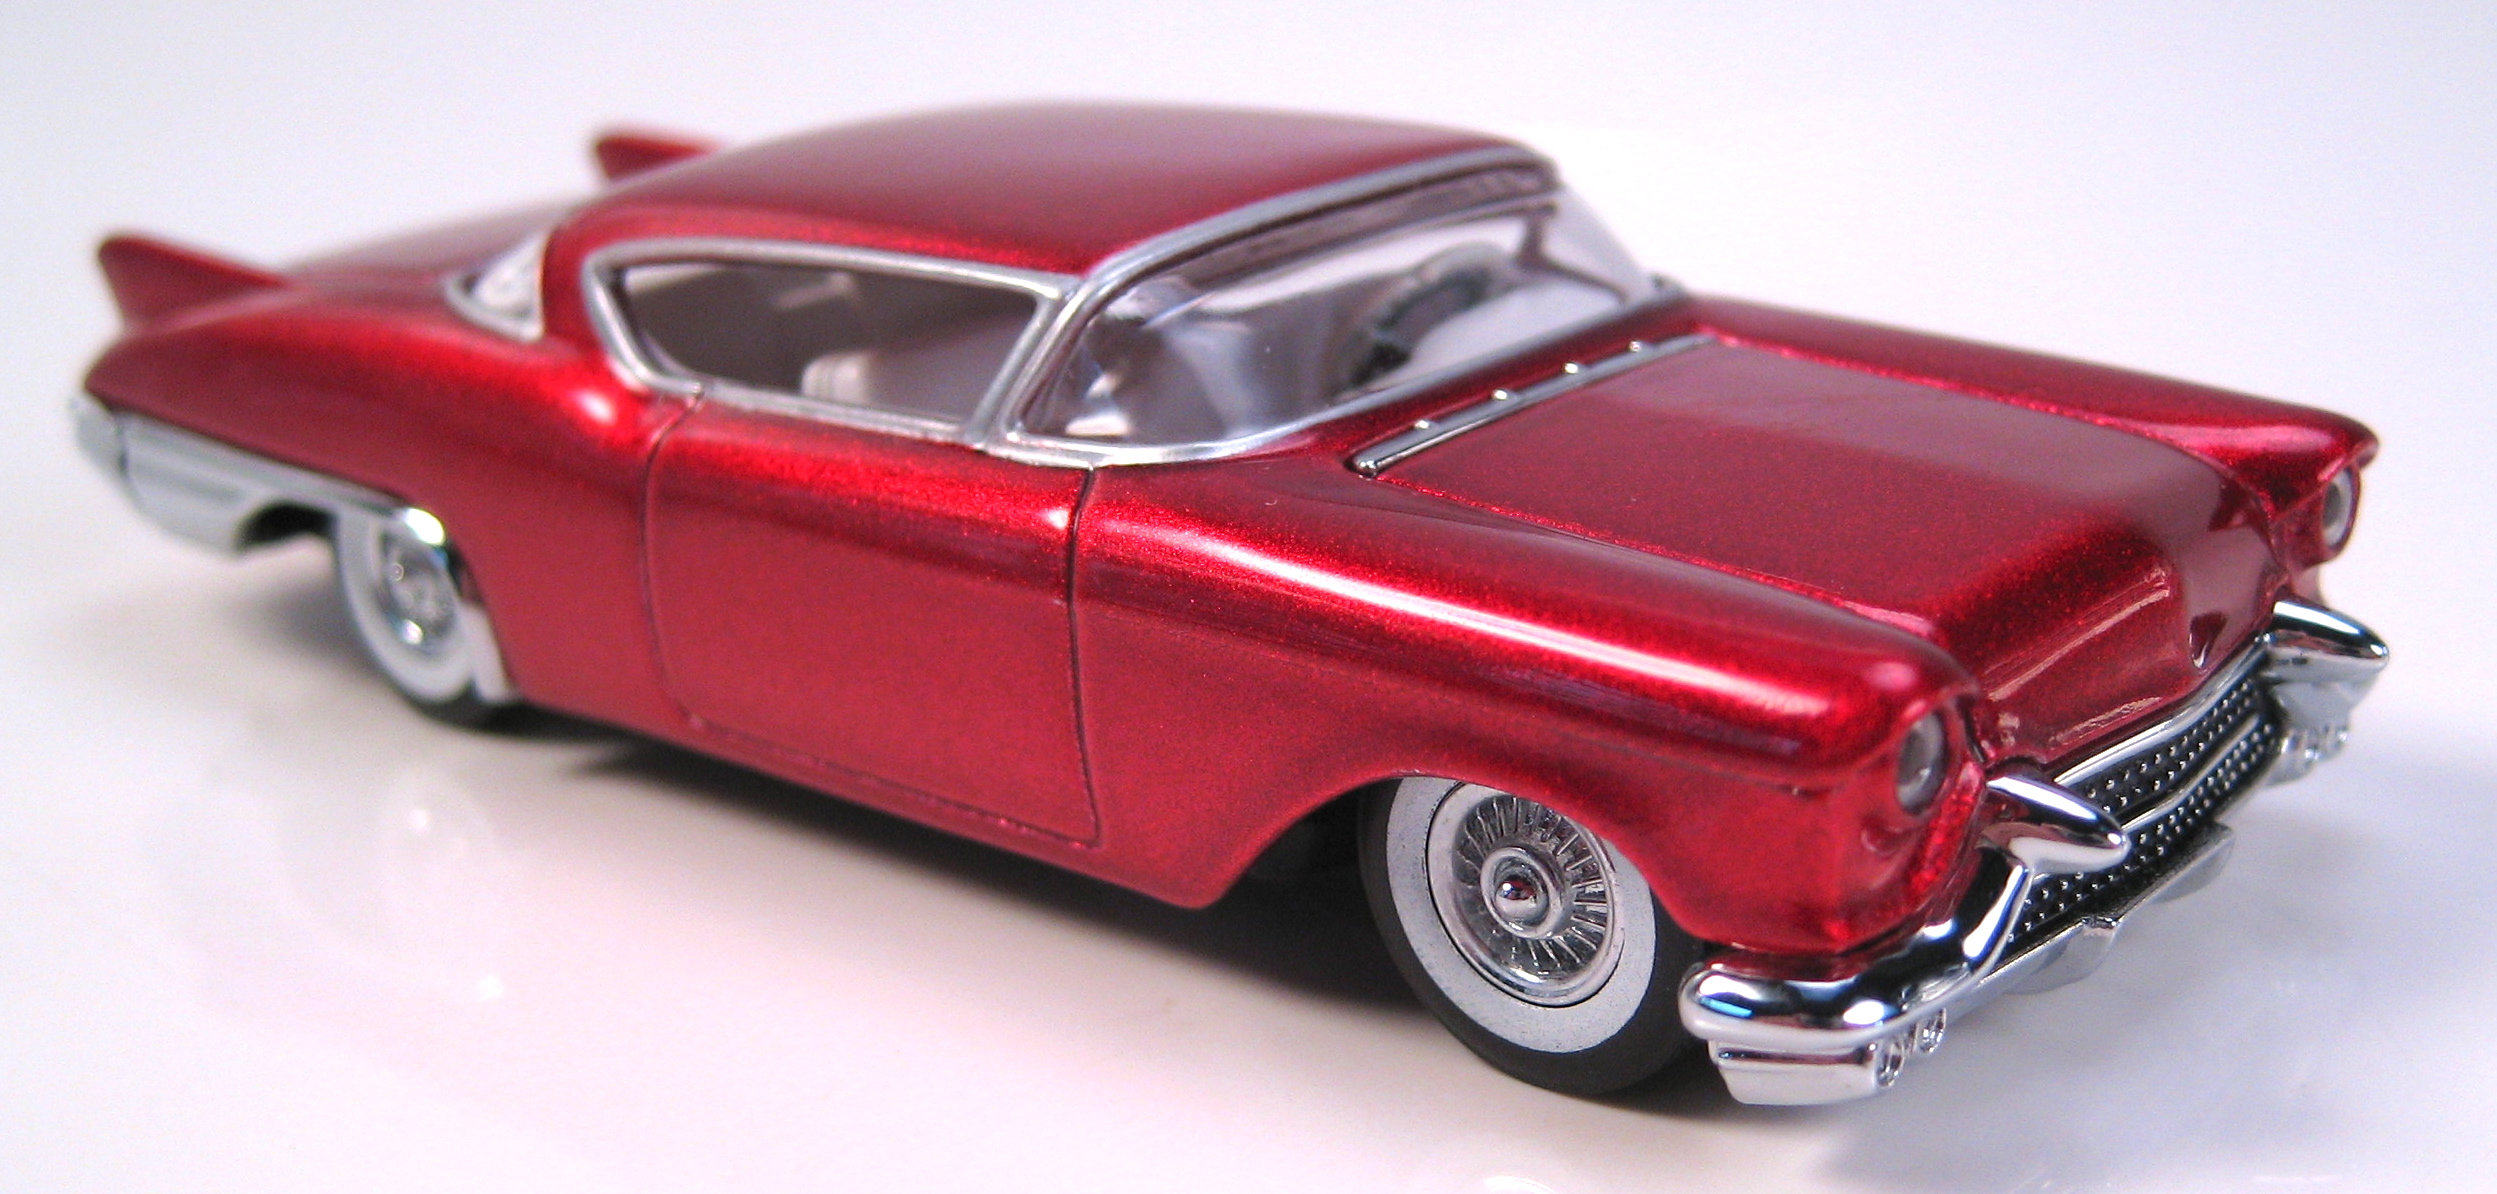 Legends: 40th Anniversary of Signature '57s 4-Car Set